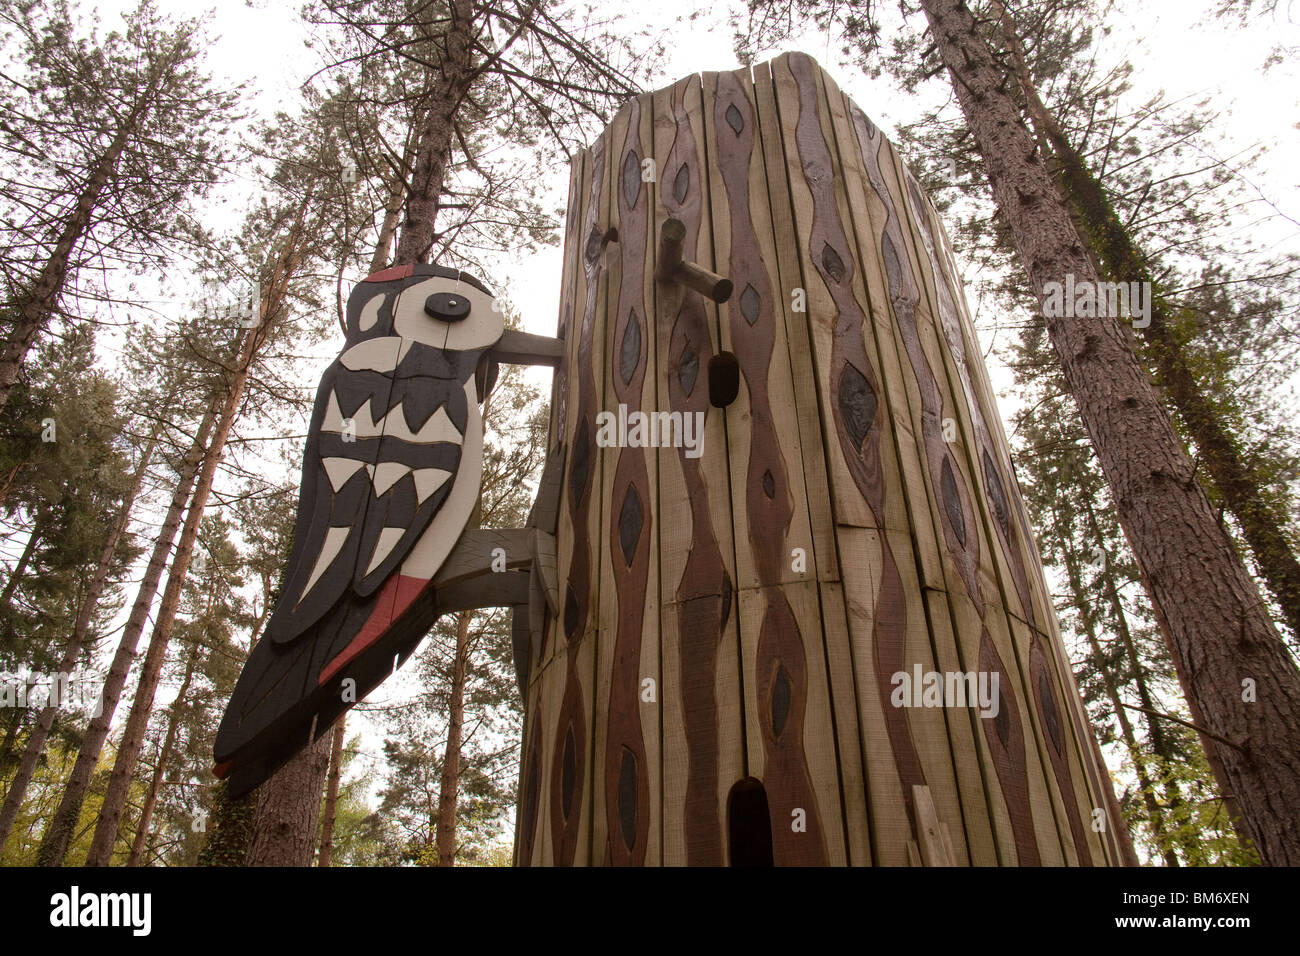 Once you've climbed, balanced and zipped there's plenty more to enjoy. Woodpecker Statue At Alice Holt Forestry Center Farnham Hampshire England United Kingdom Stock Photo Alamy